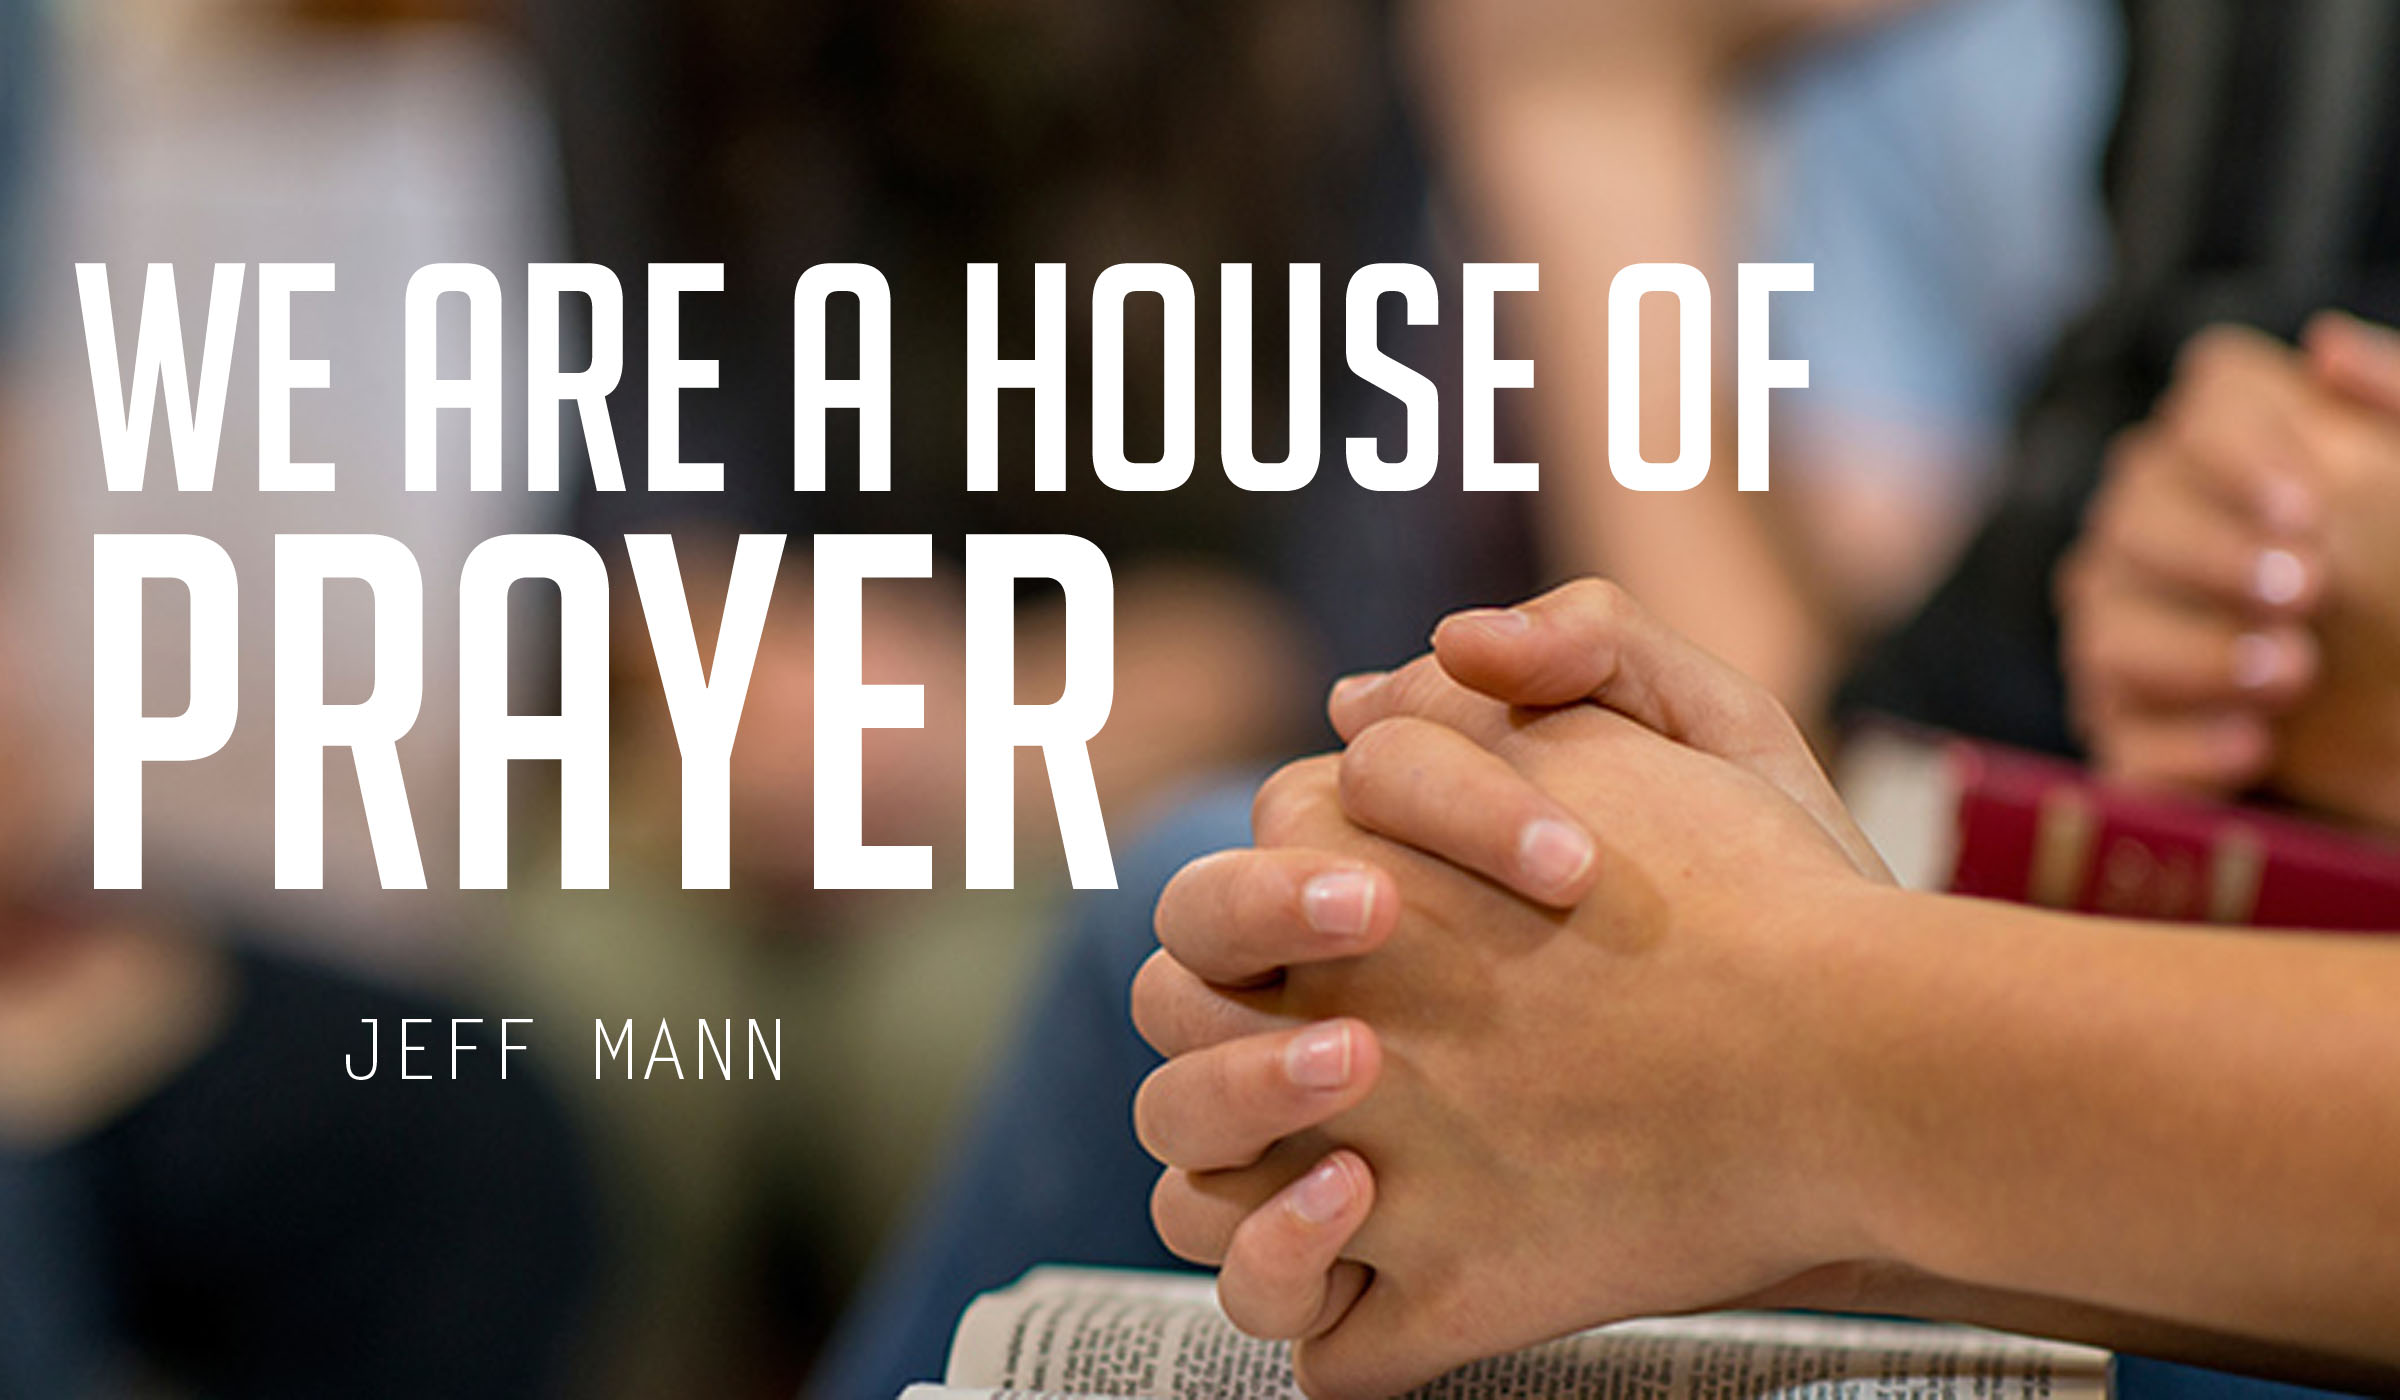 We are a House of Prayer